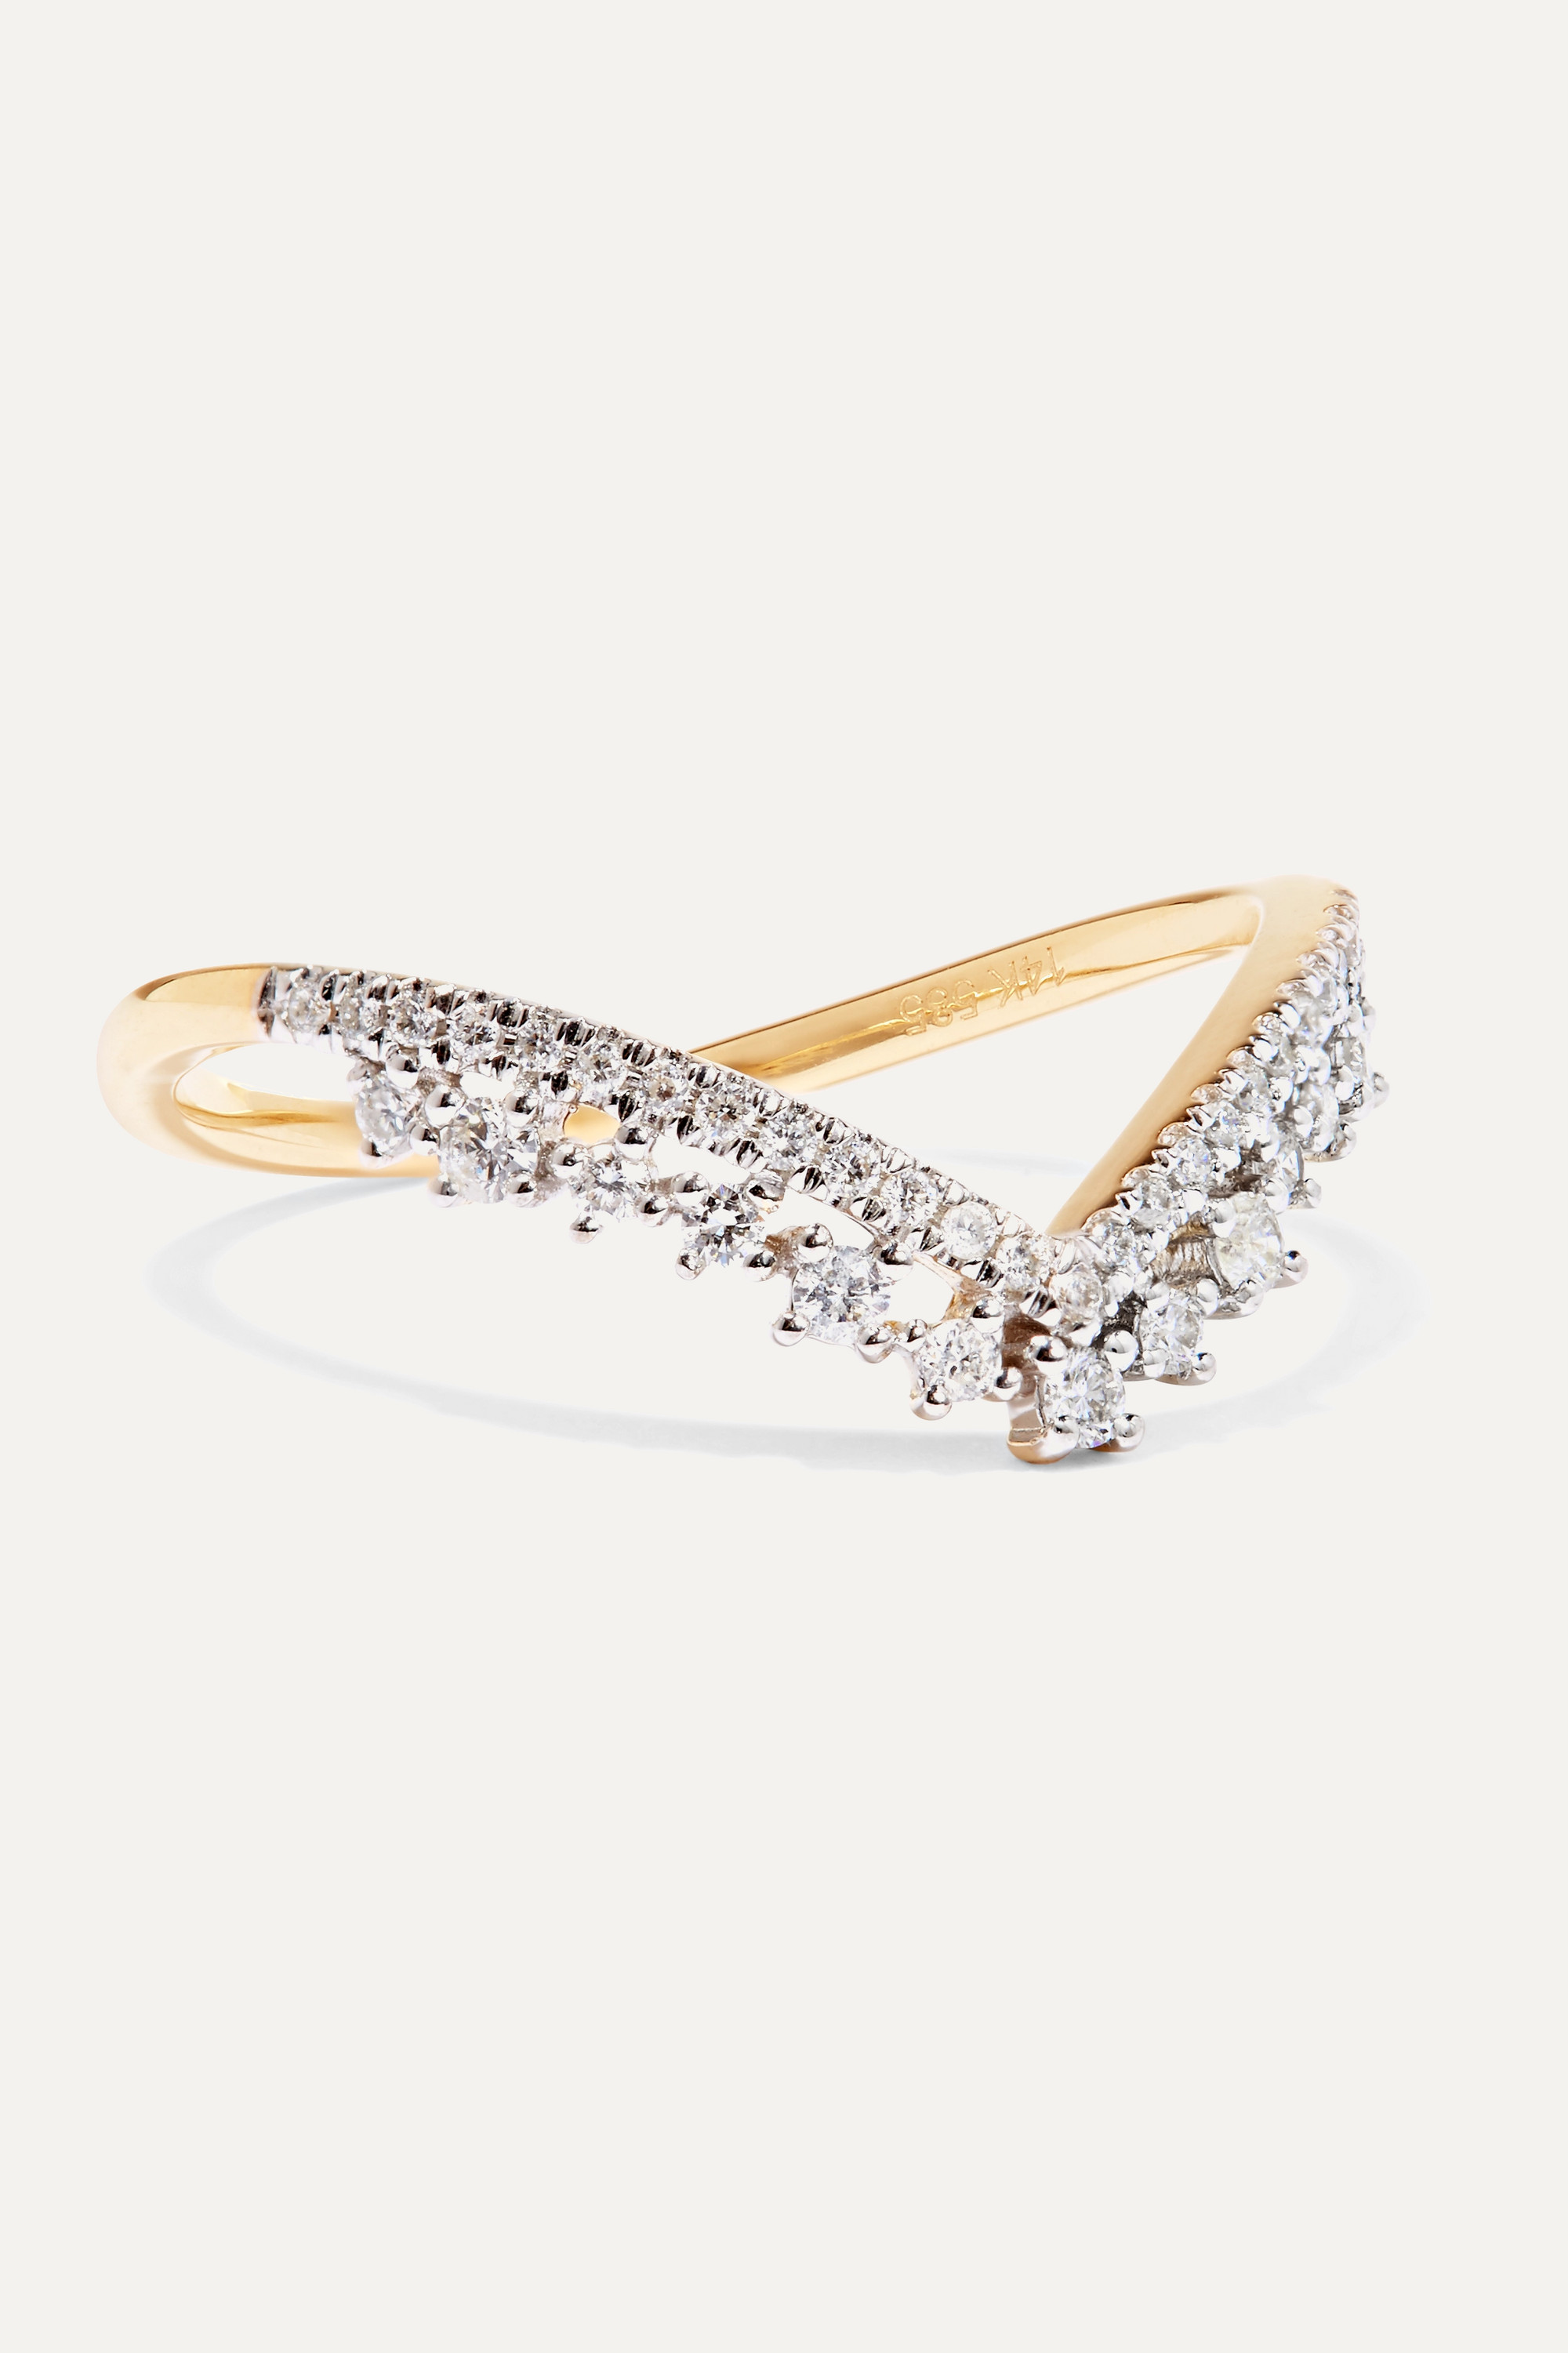 STONE AND STRAND 14-karat gold diamond ring